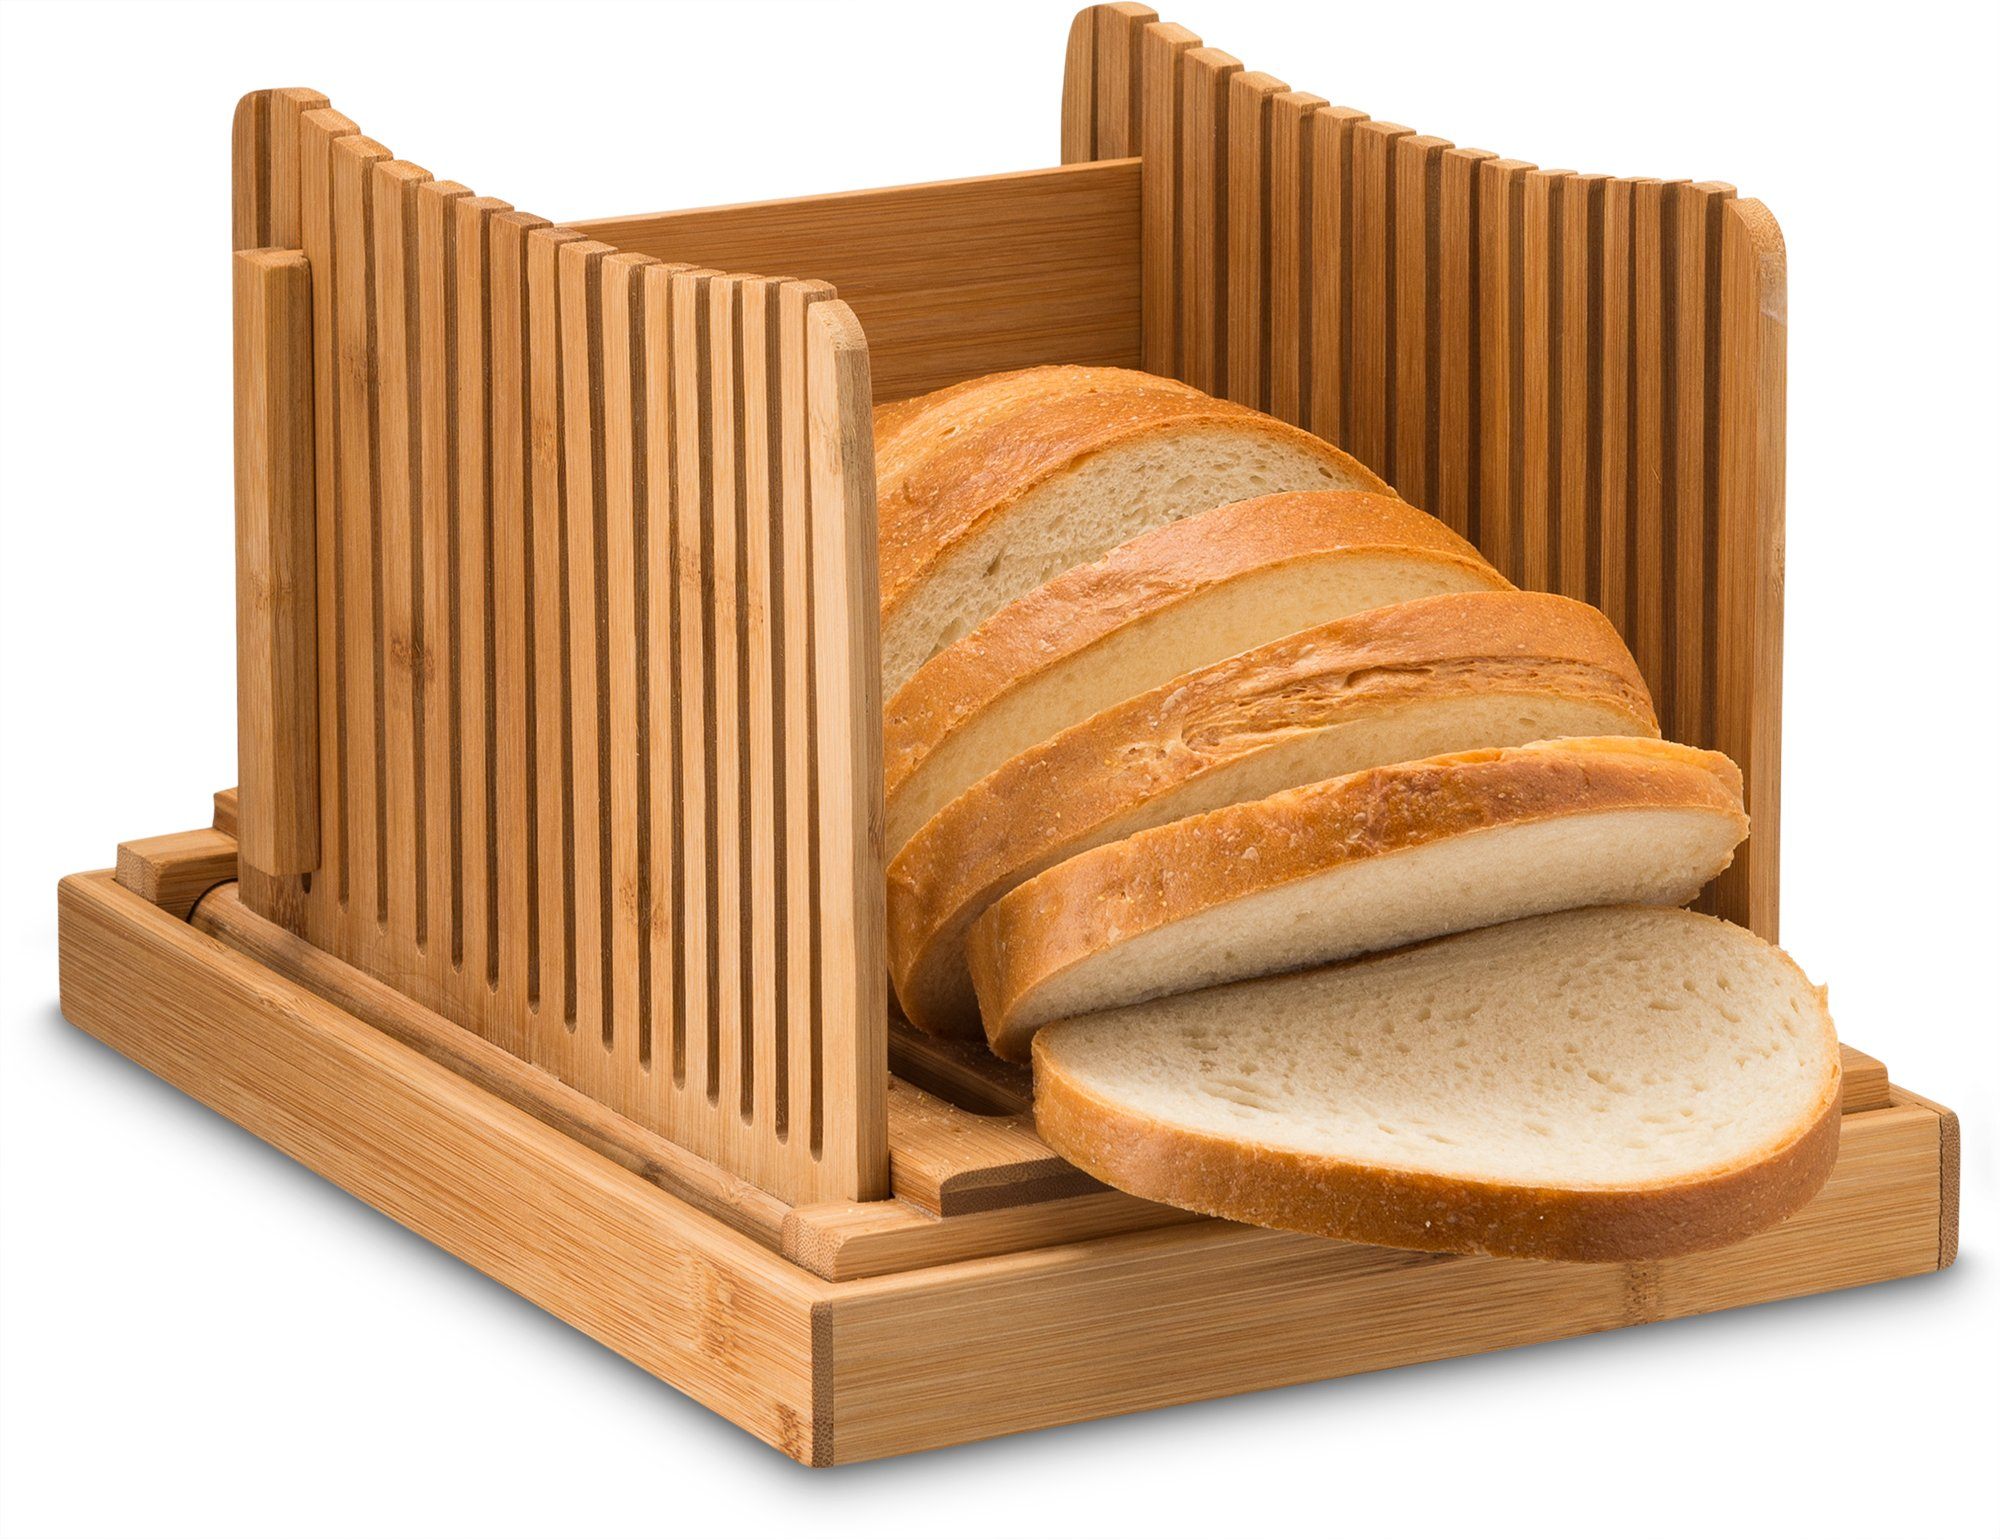 Bamboo bread cutter slicer with Crumb Catcher, Wood Compact Foldable Bread Slicer. By Bambusi